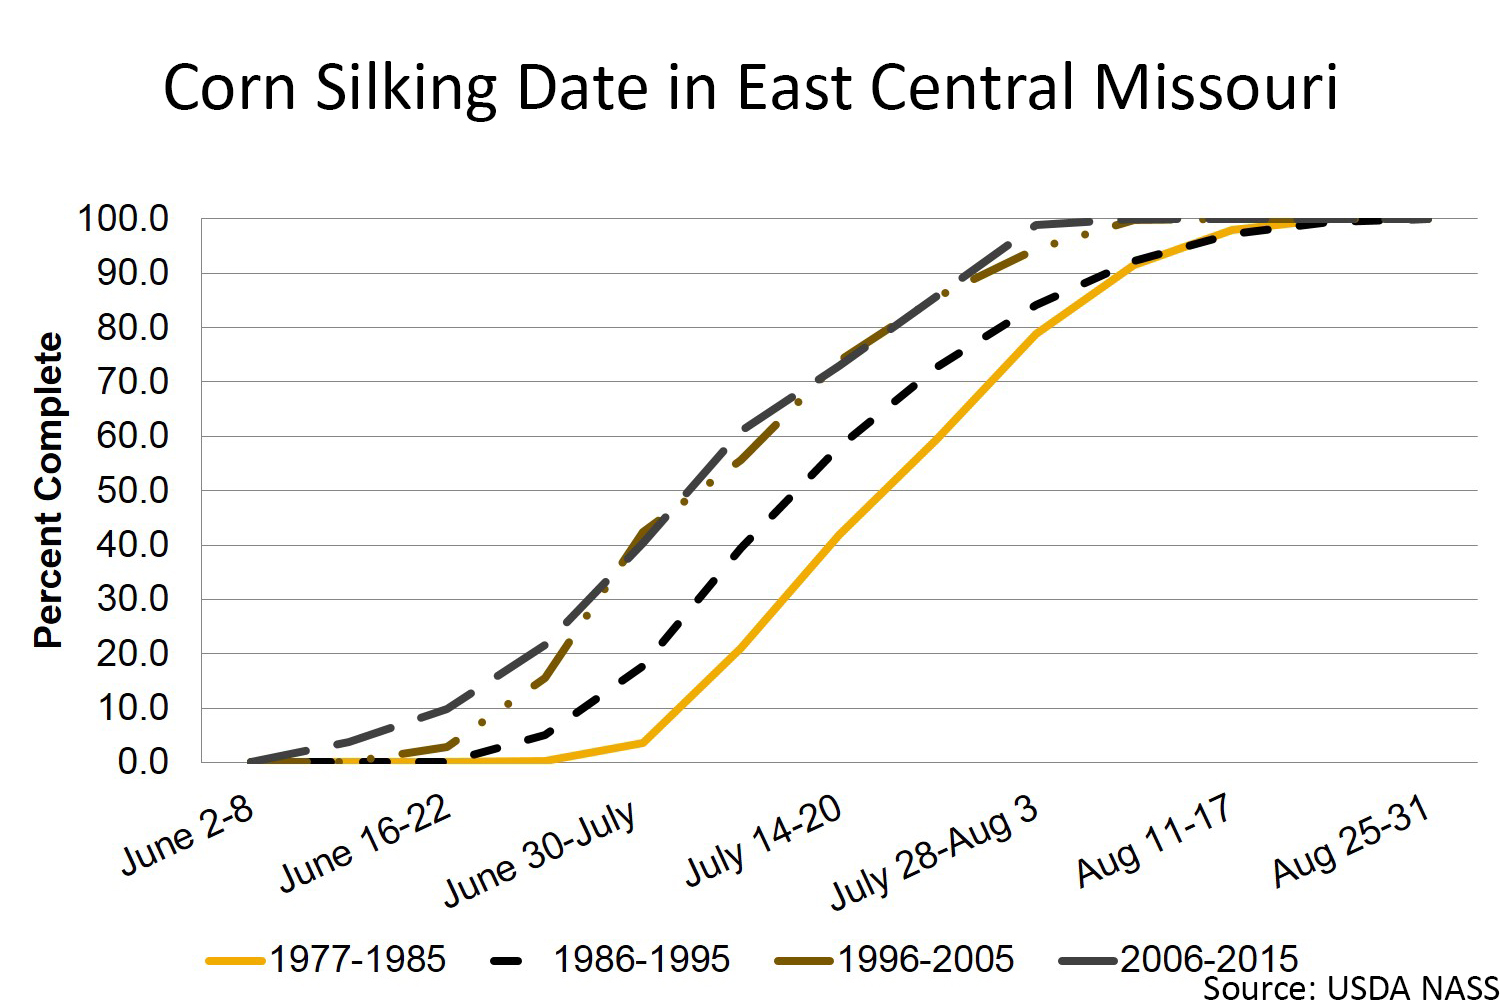 Corn silking date in east central Missouri chart